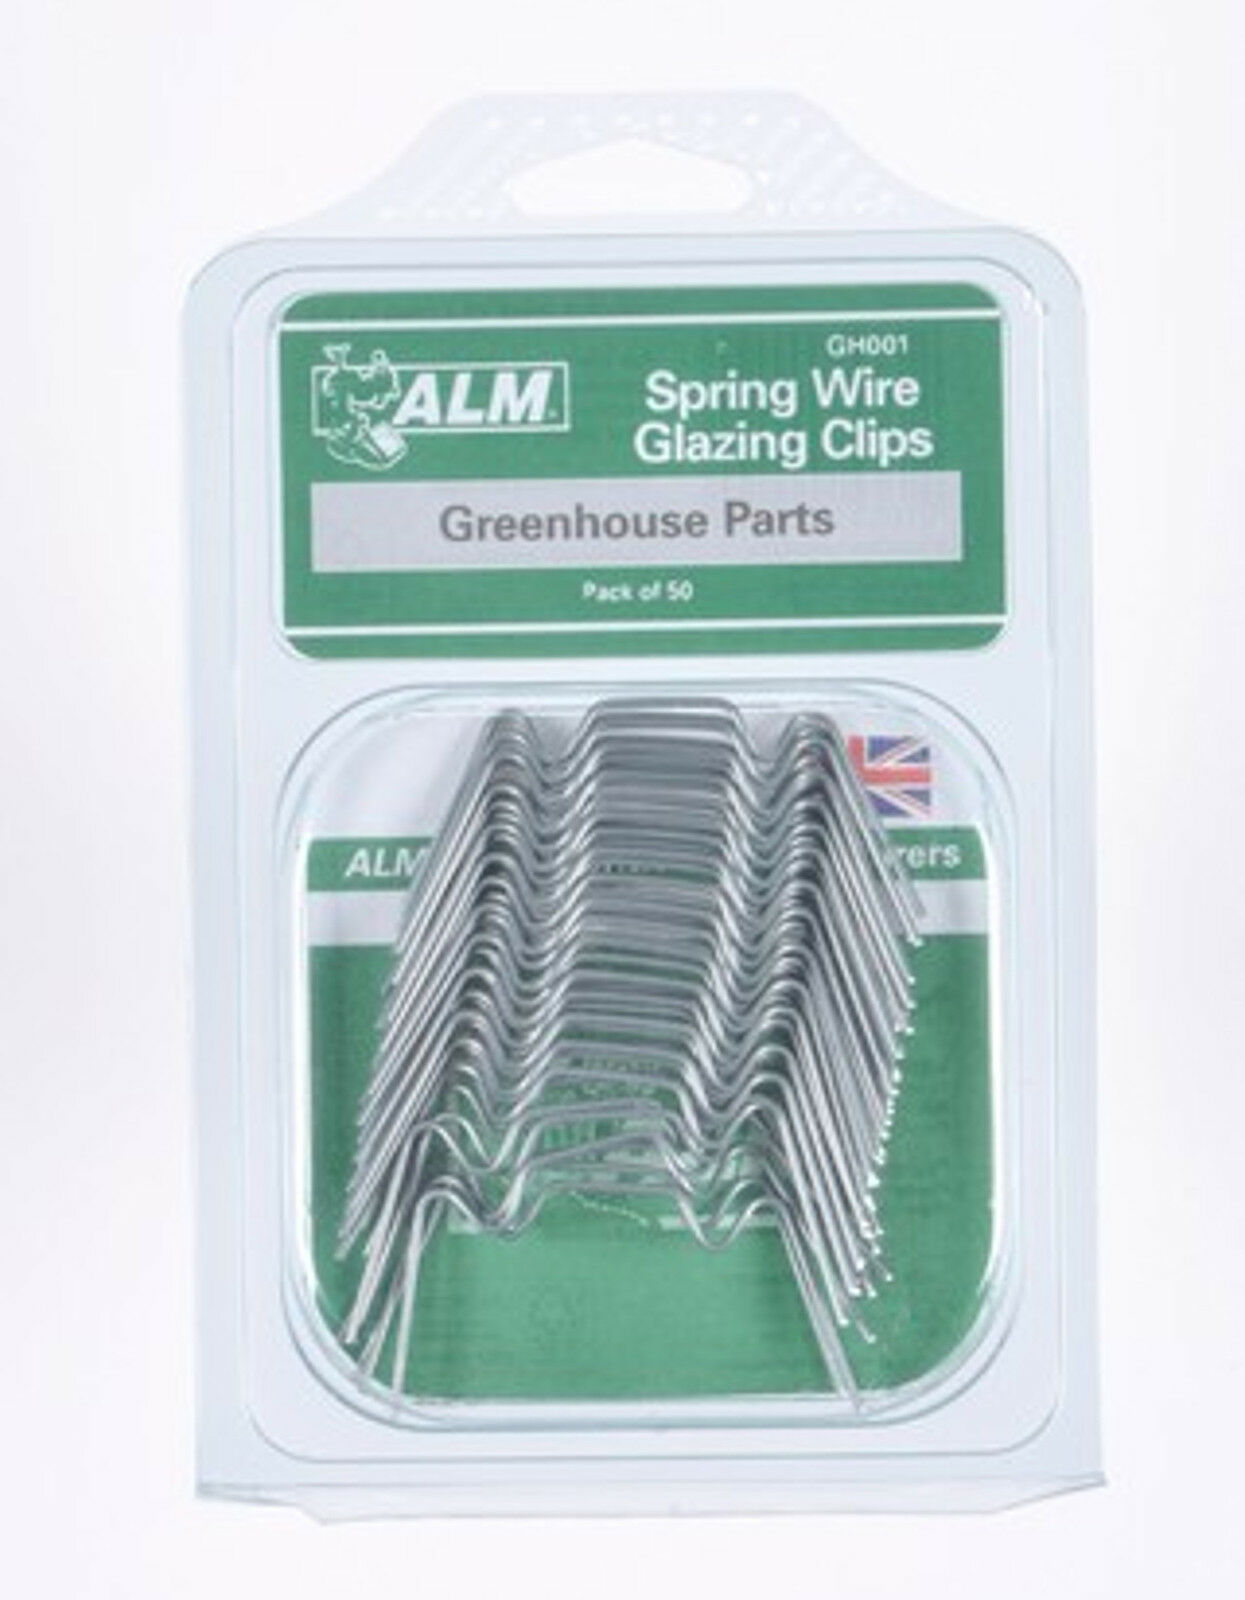 Pack of 50 Greenhouse spring wire W window glazing clips